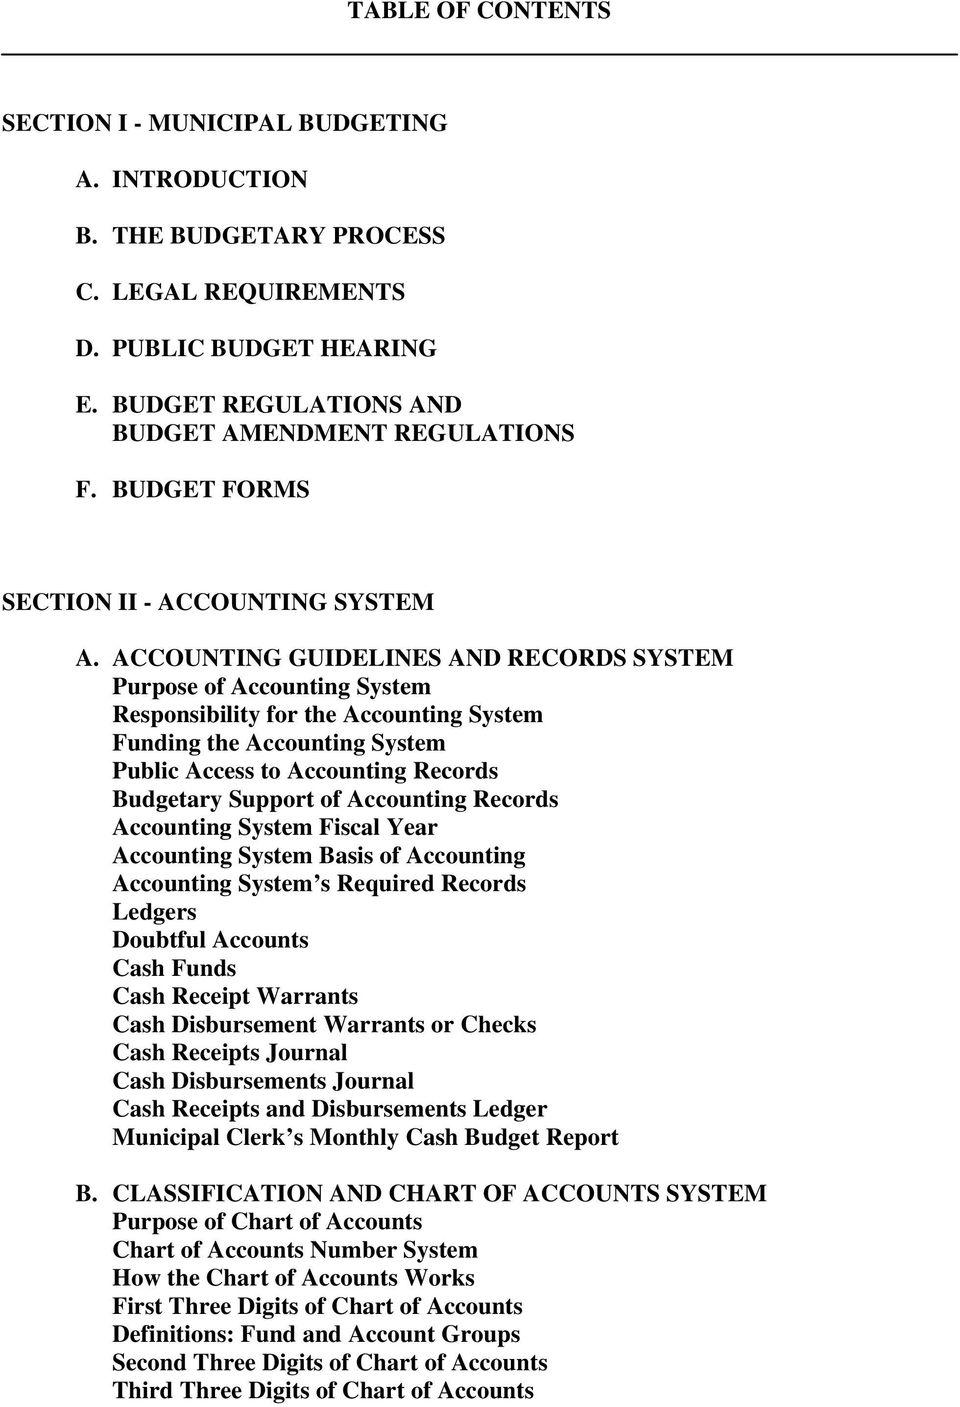 ACCOUNTING GUIDELINES AND RECORDS SYSTEM Purpose of Accounting System Responsibility for the Accounting System Funding the Accounting System Public Access to Accounting Records Budgetary Support of